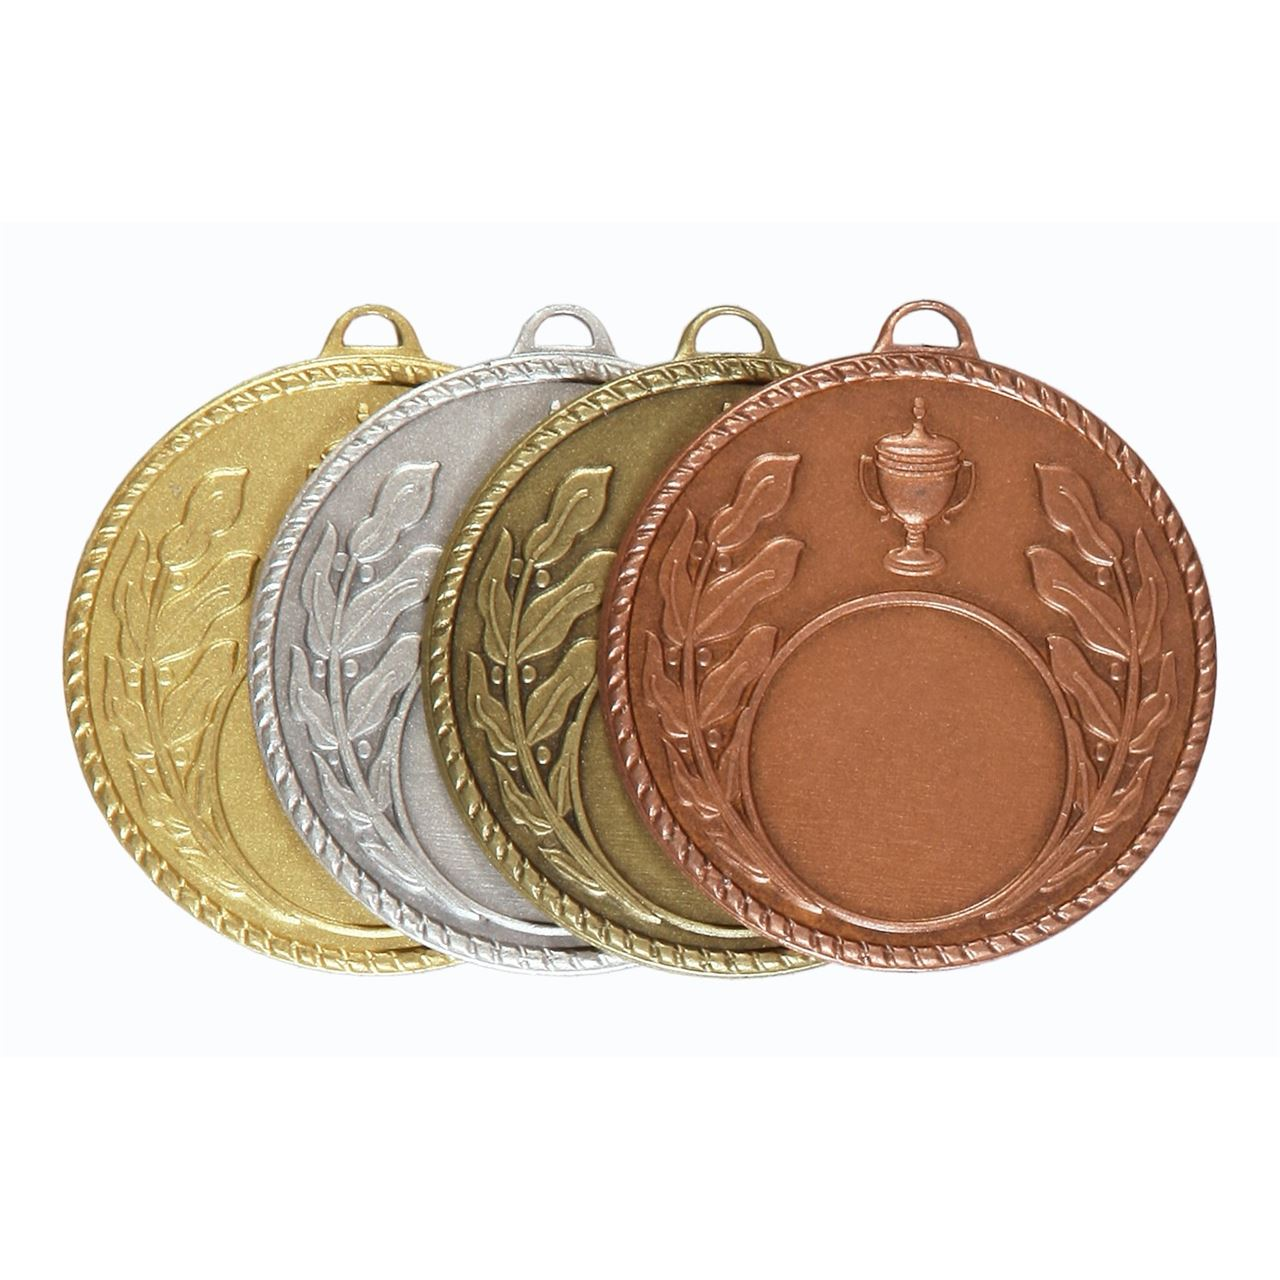 Quality Laurel & Cup Medal (size: 50mm) - 5804E